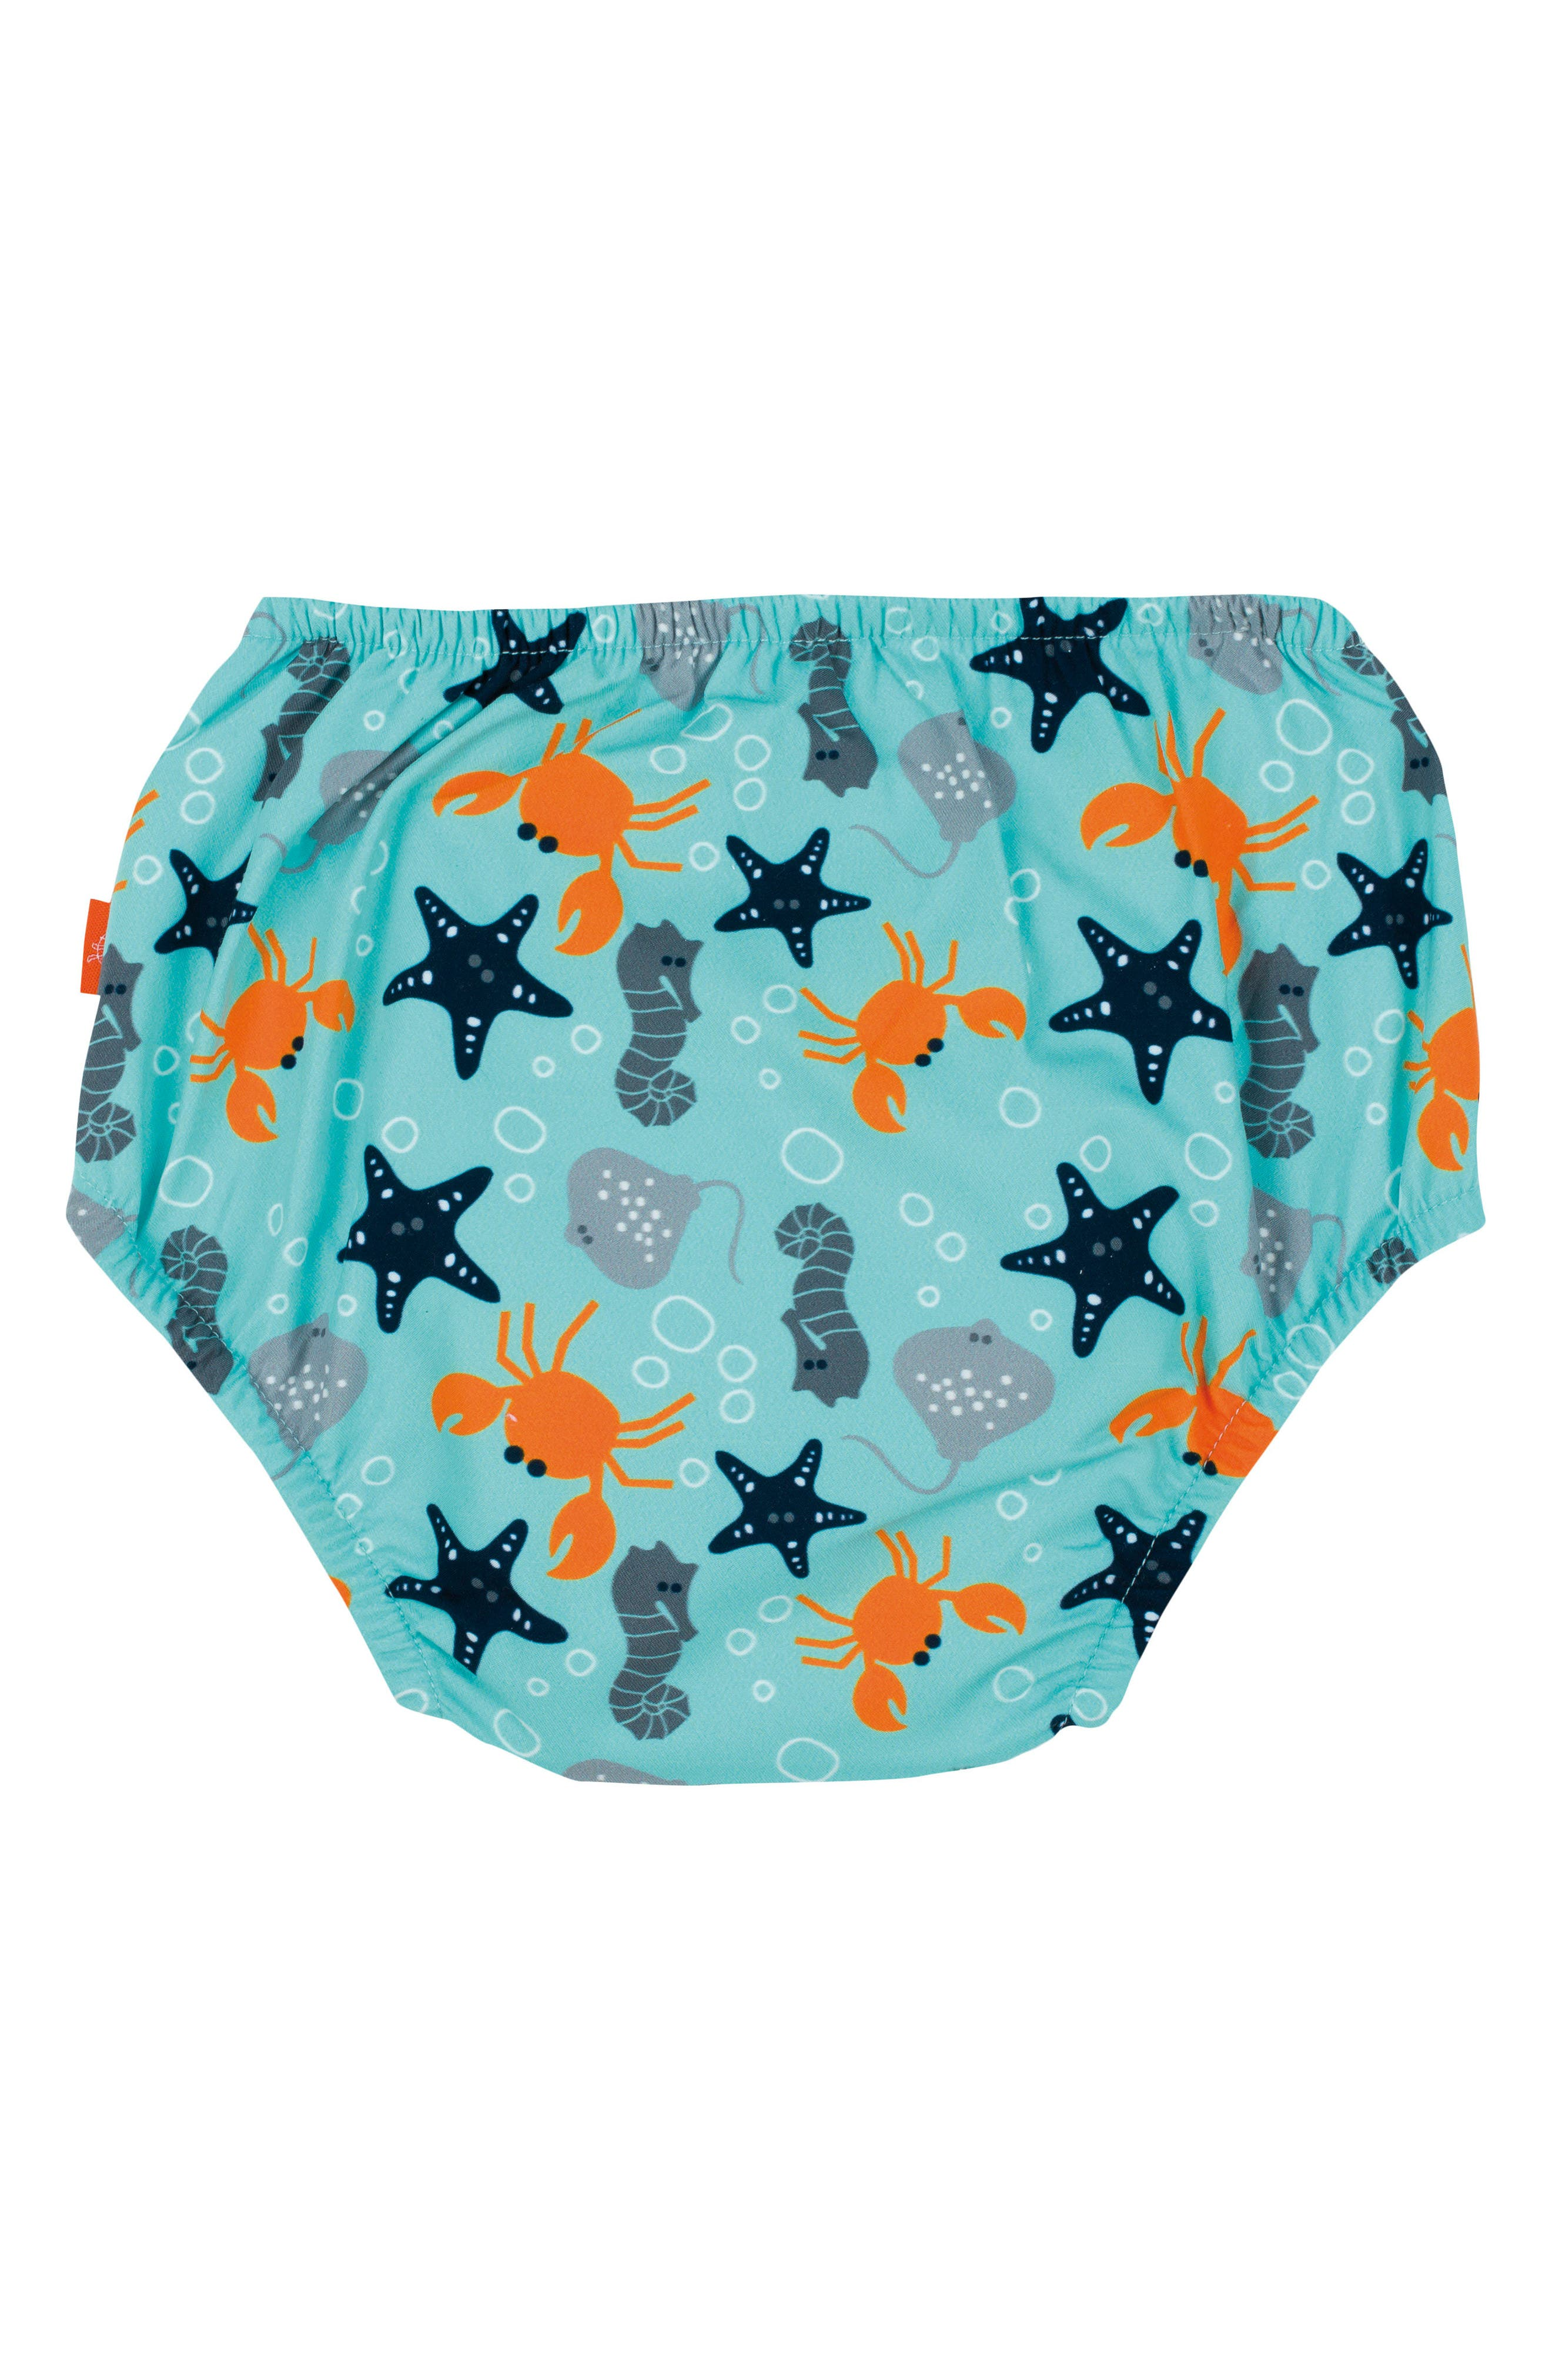 Star Fish Swim Diaper Cover,                             Alternate thumbnail 2, color,                             Light Blue Orange Grey Navy